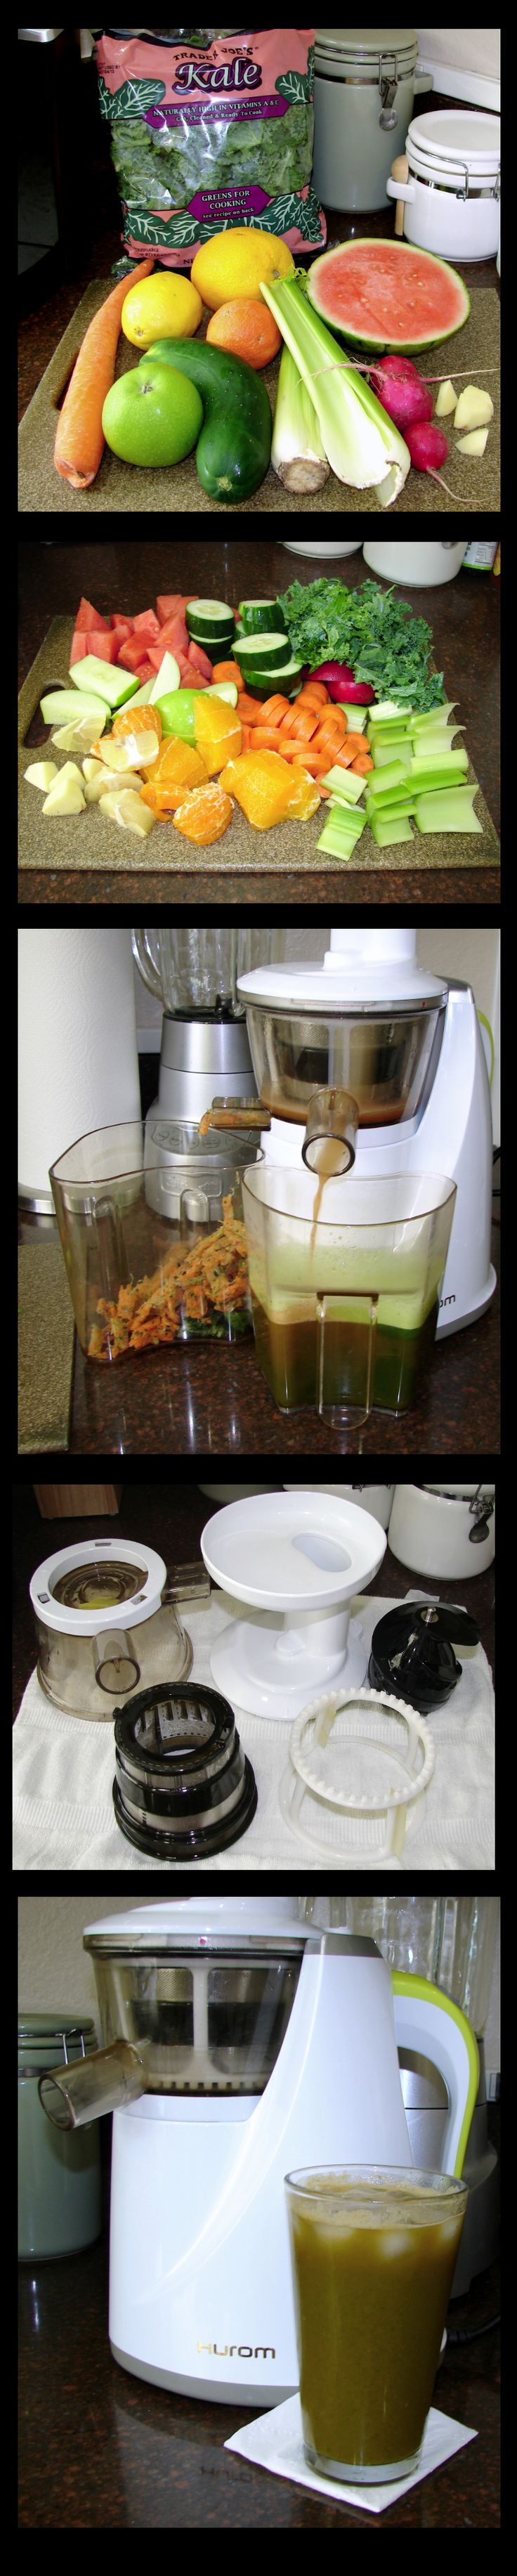 Hurom Slow Juicer Lemon : 1000+ images about Best Juicer for Kale on Pinterest Kale, Apples and Best juicing recipes